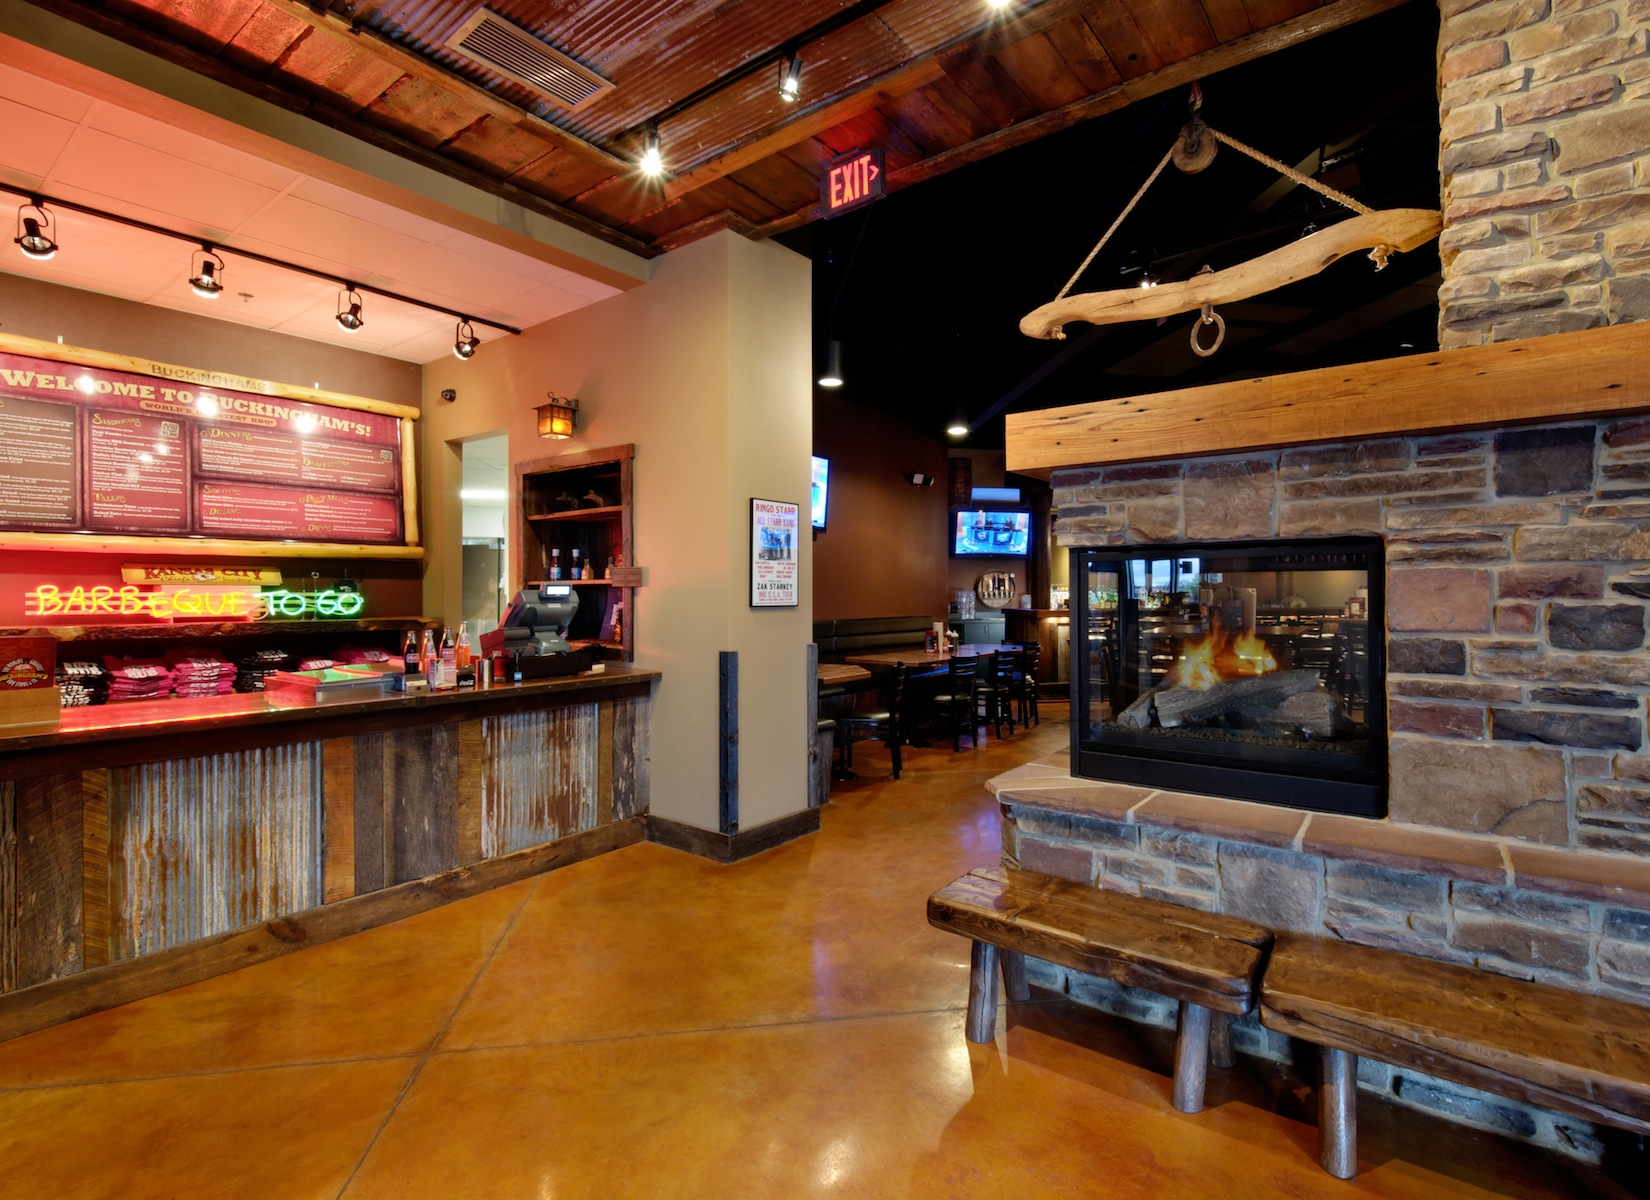 BBQ Restaurant | H-Design\'s Blog